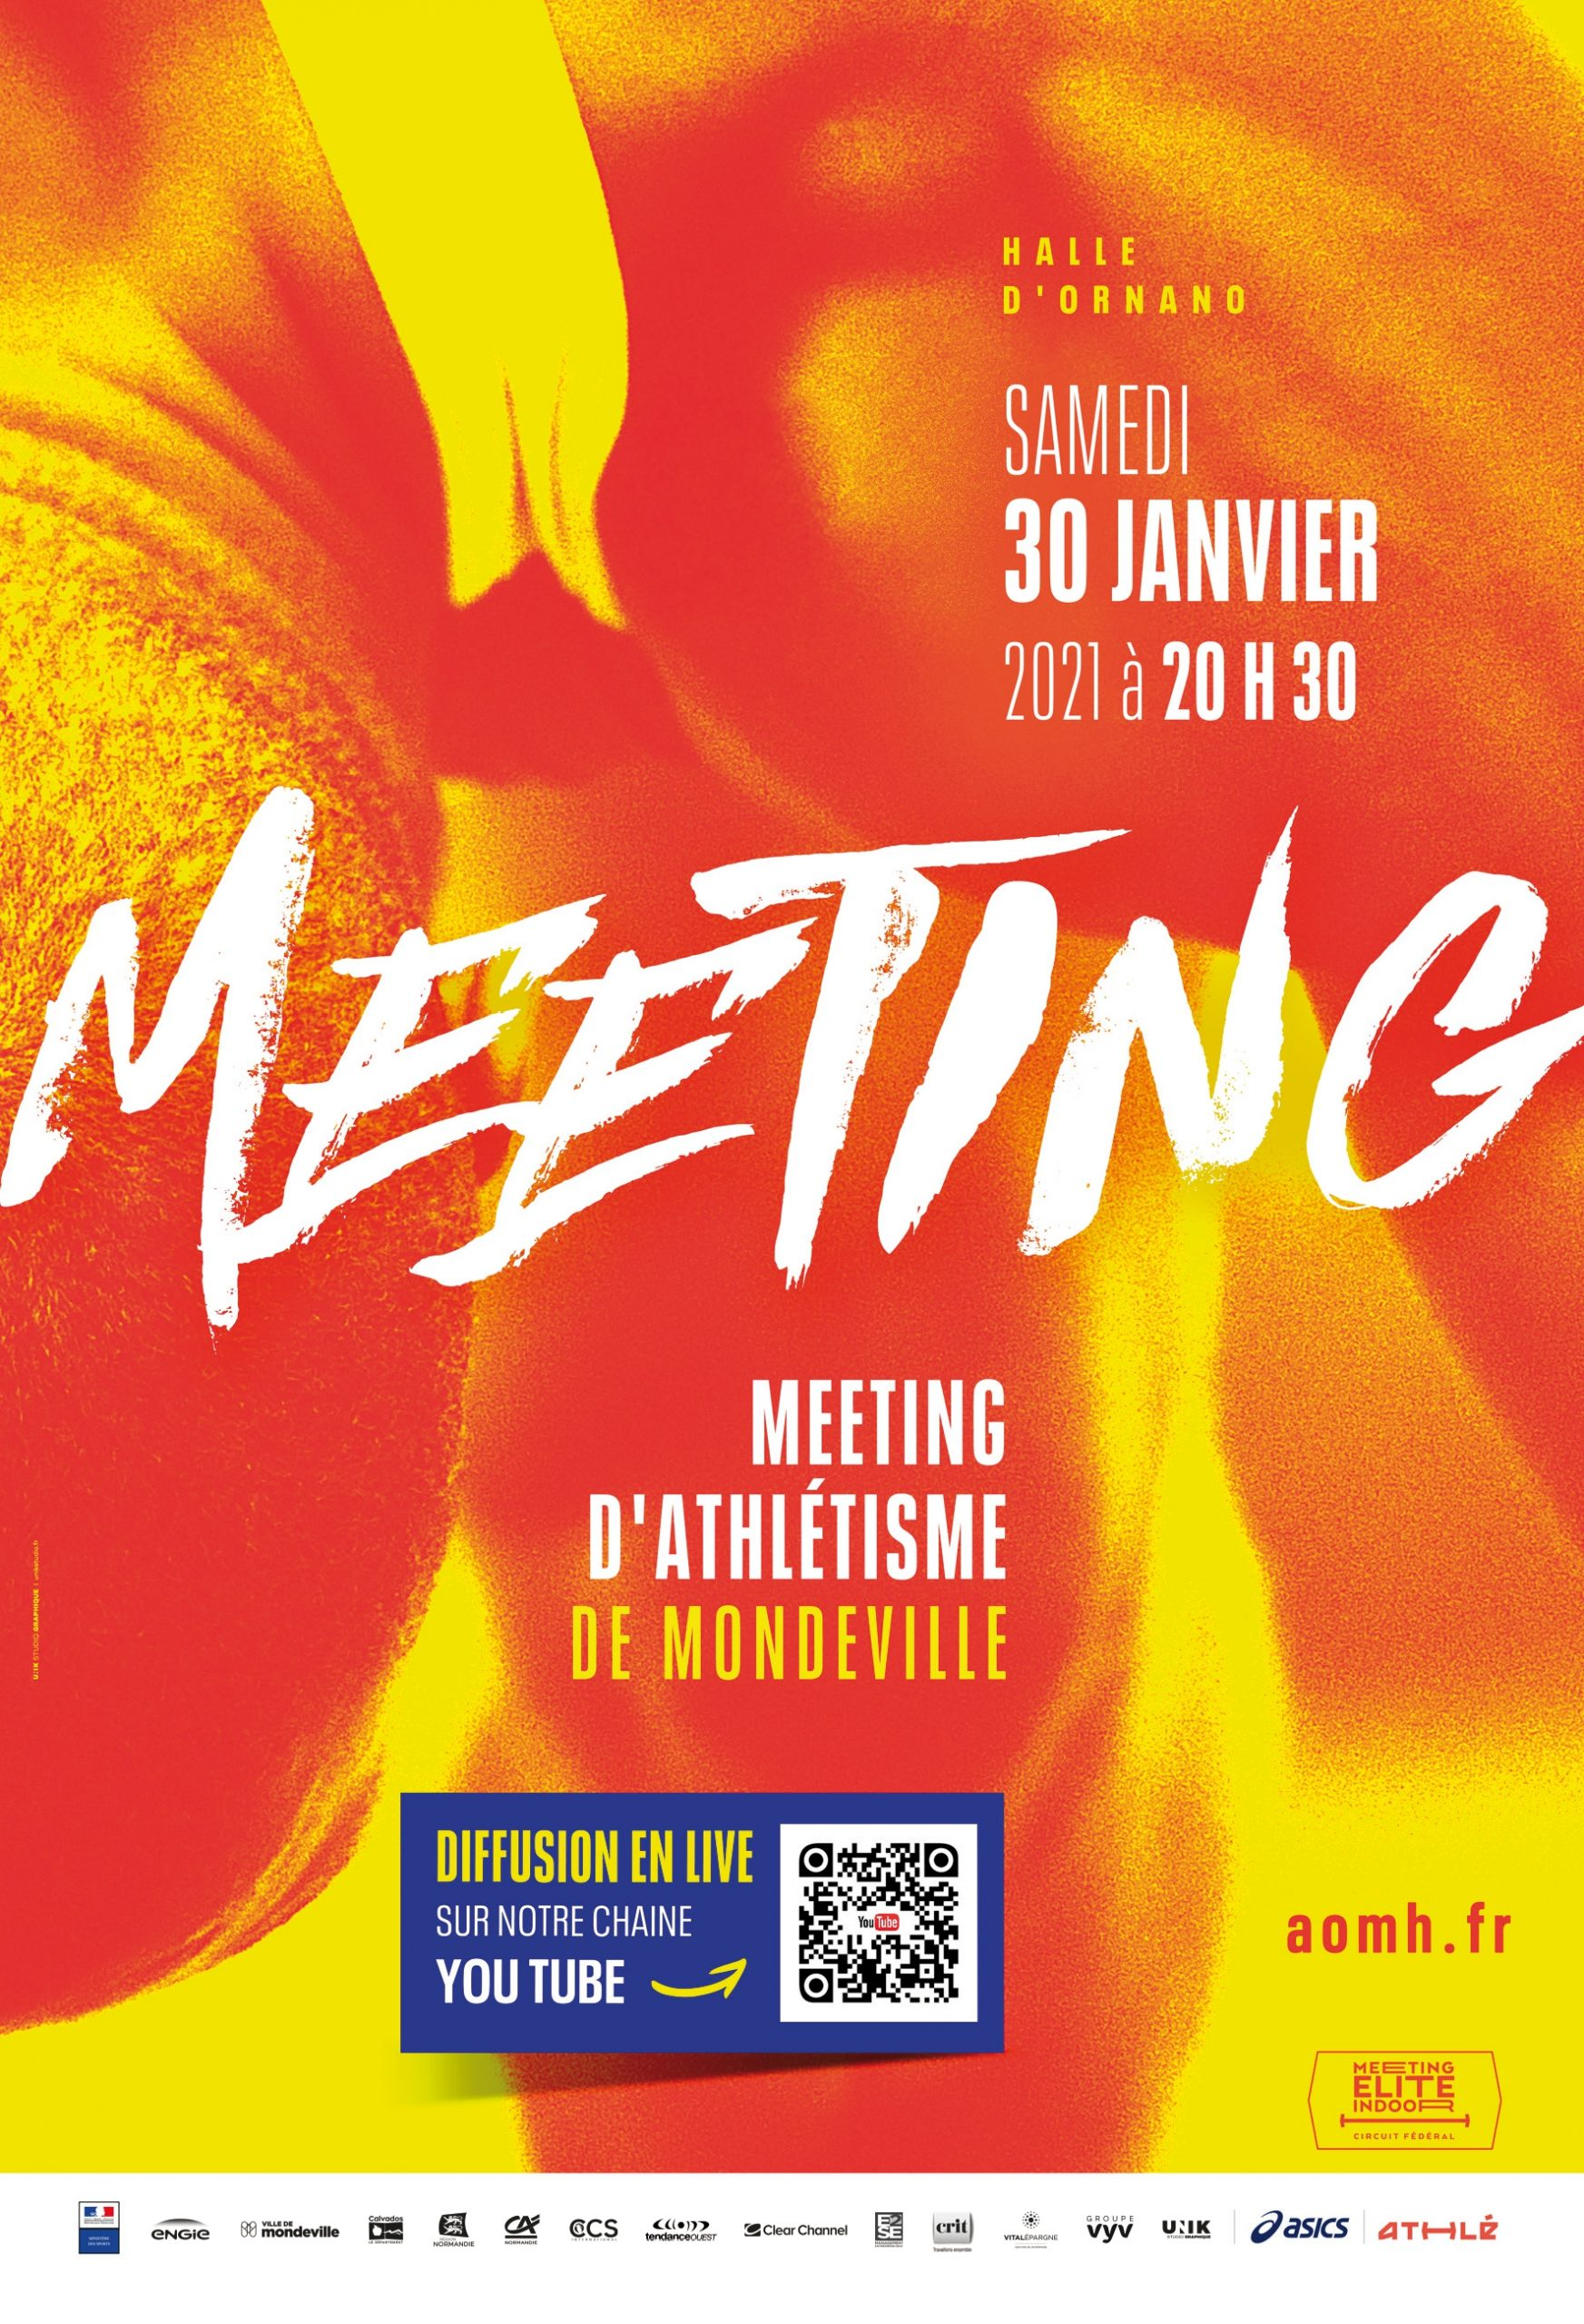 MEETING MONDEVILLE ATHLETISME 2021